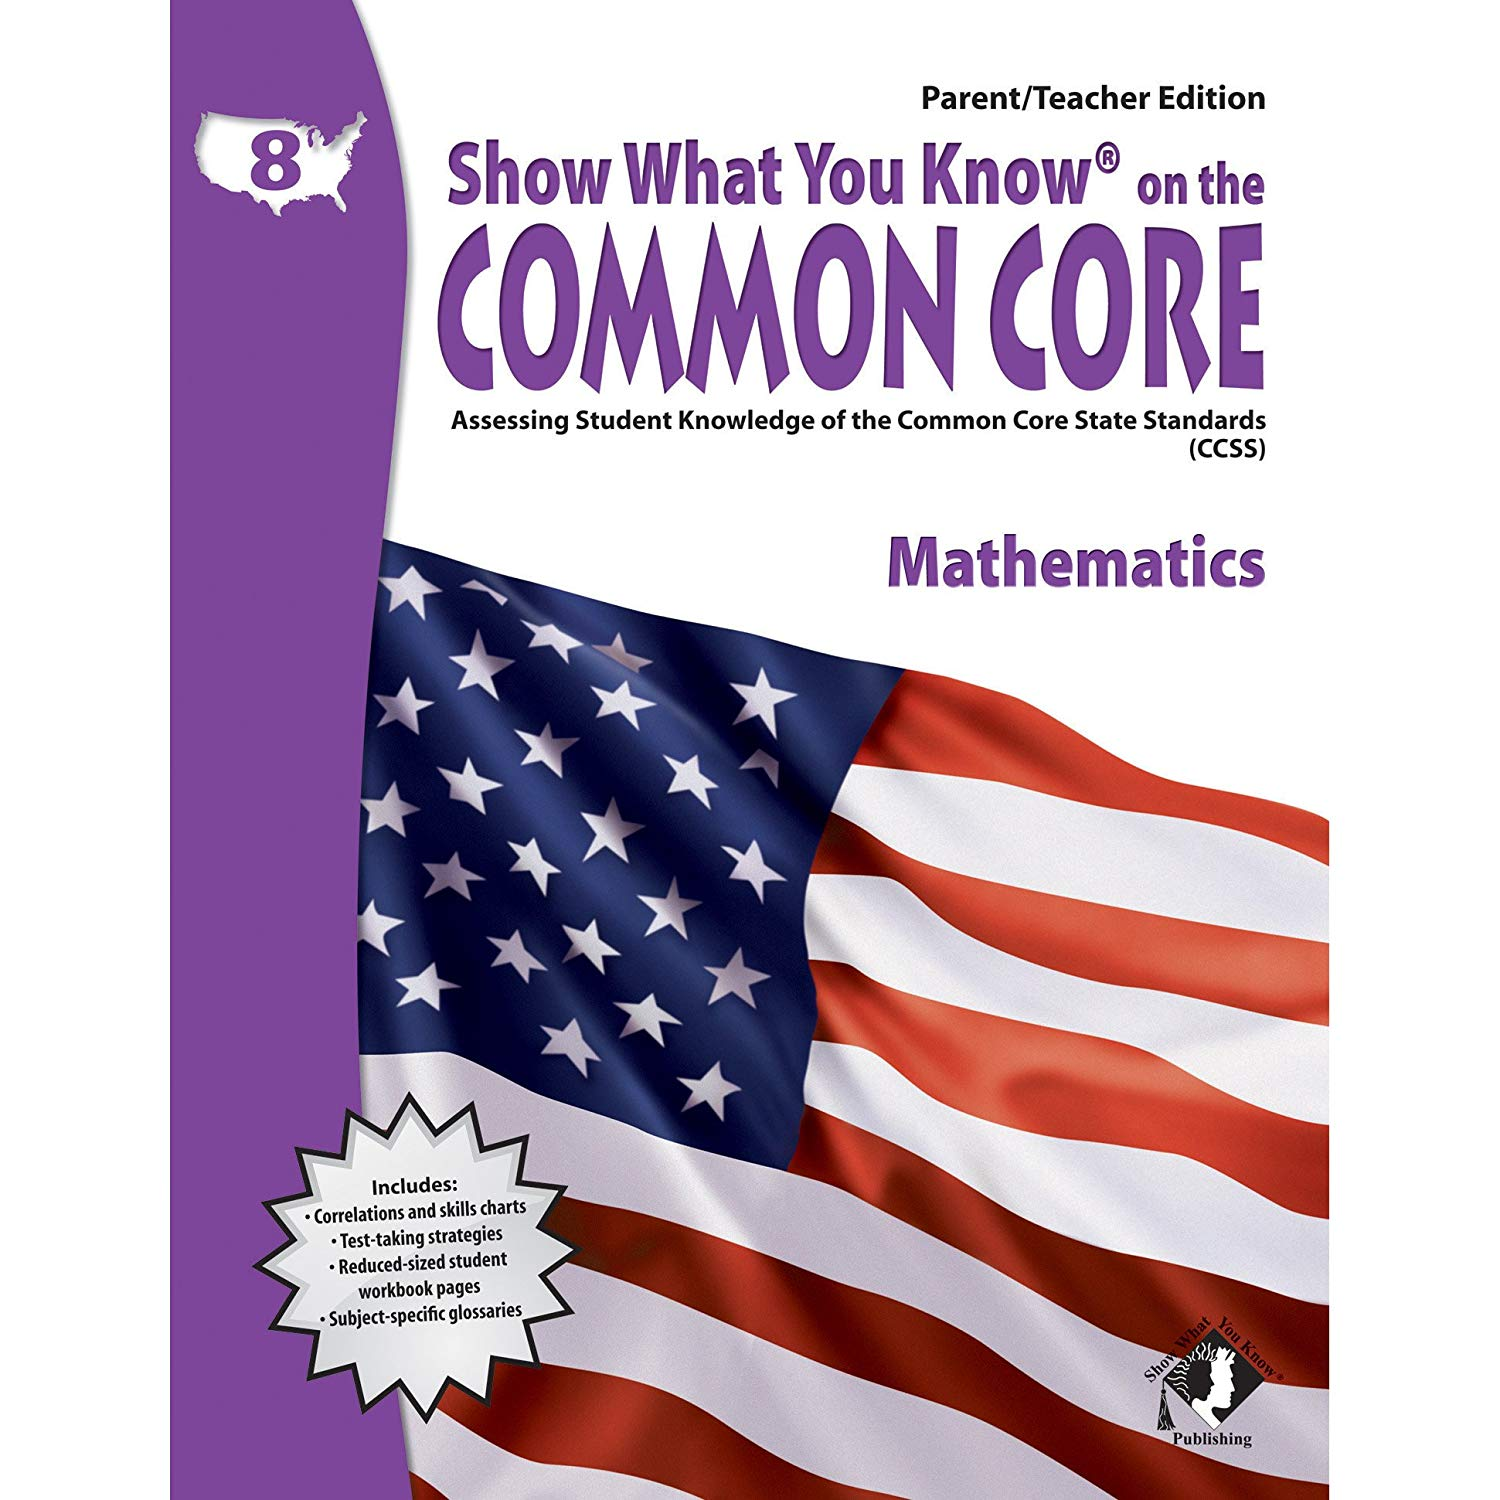 Show What You Know on the Common Core: Assessing Student Knowledge of the Common Core State Standards, Grade 8 Mathematics, Parent/Teacher Edition